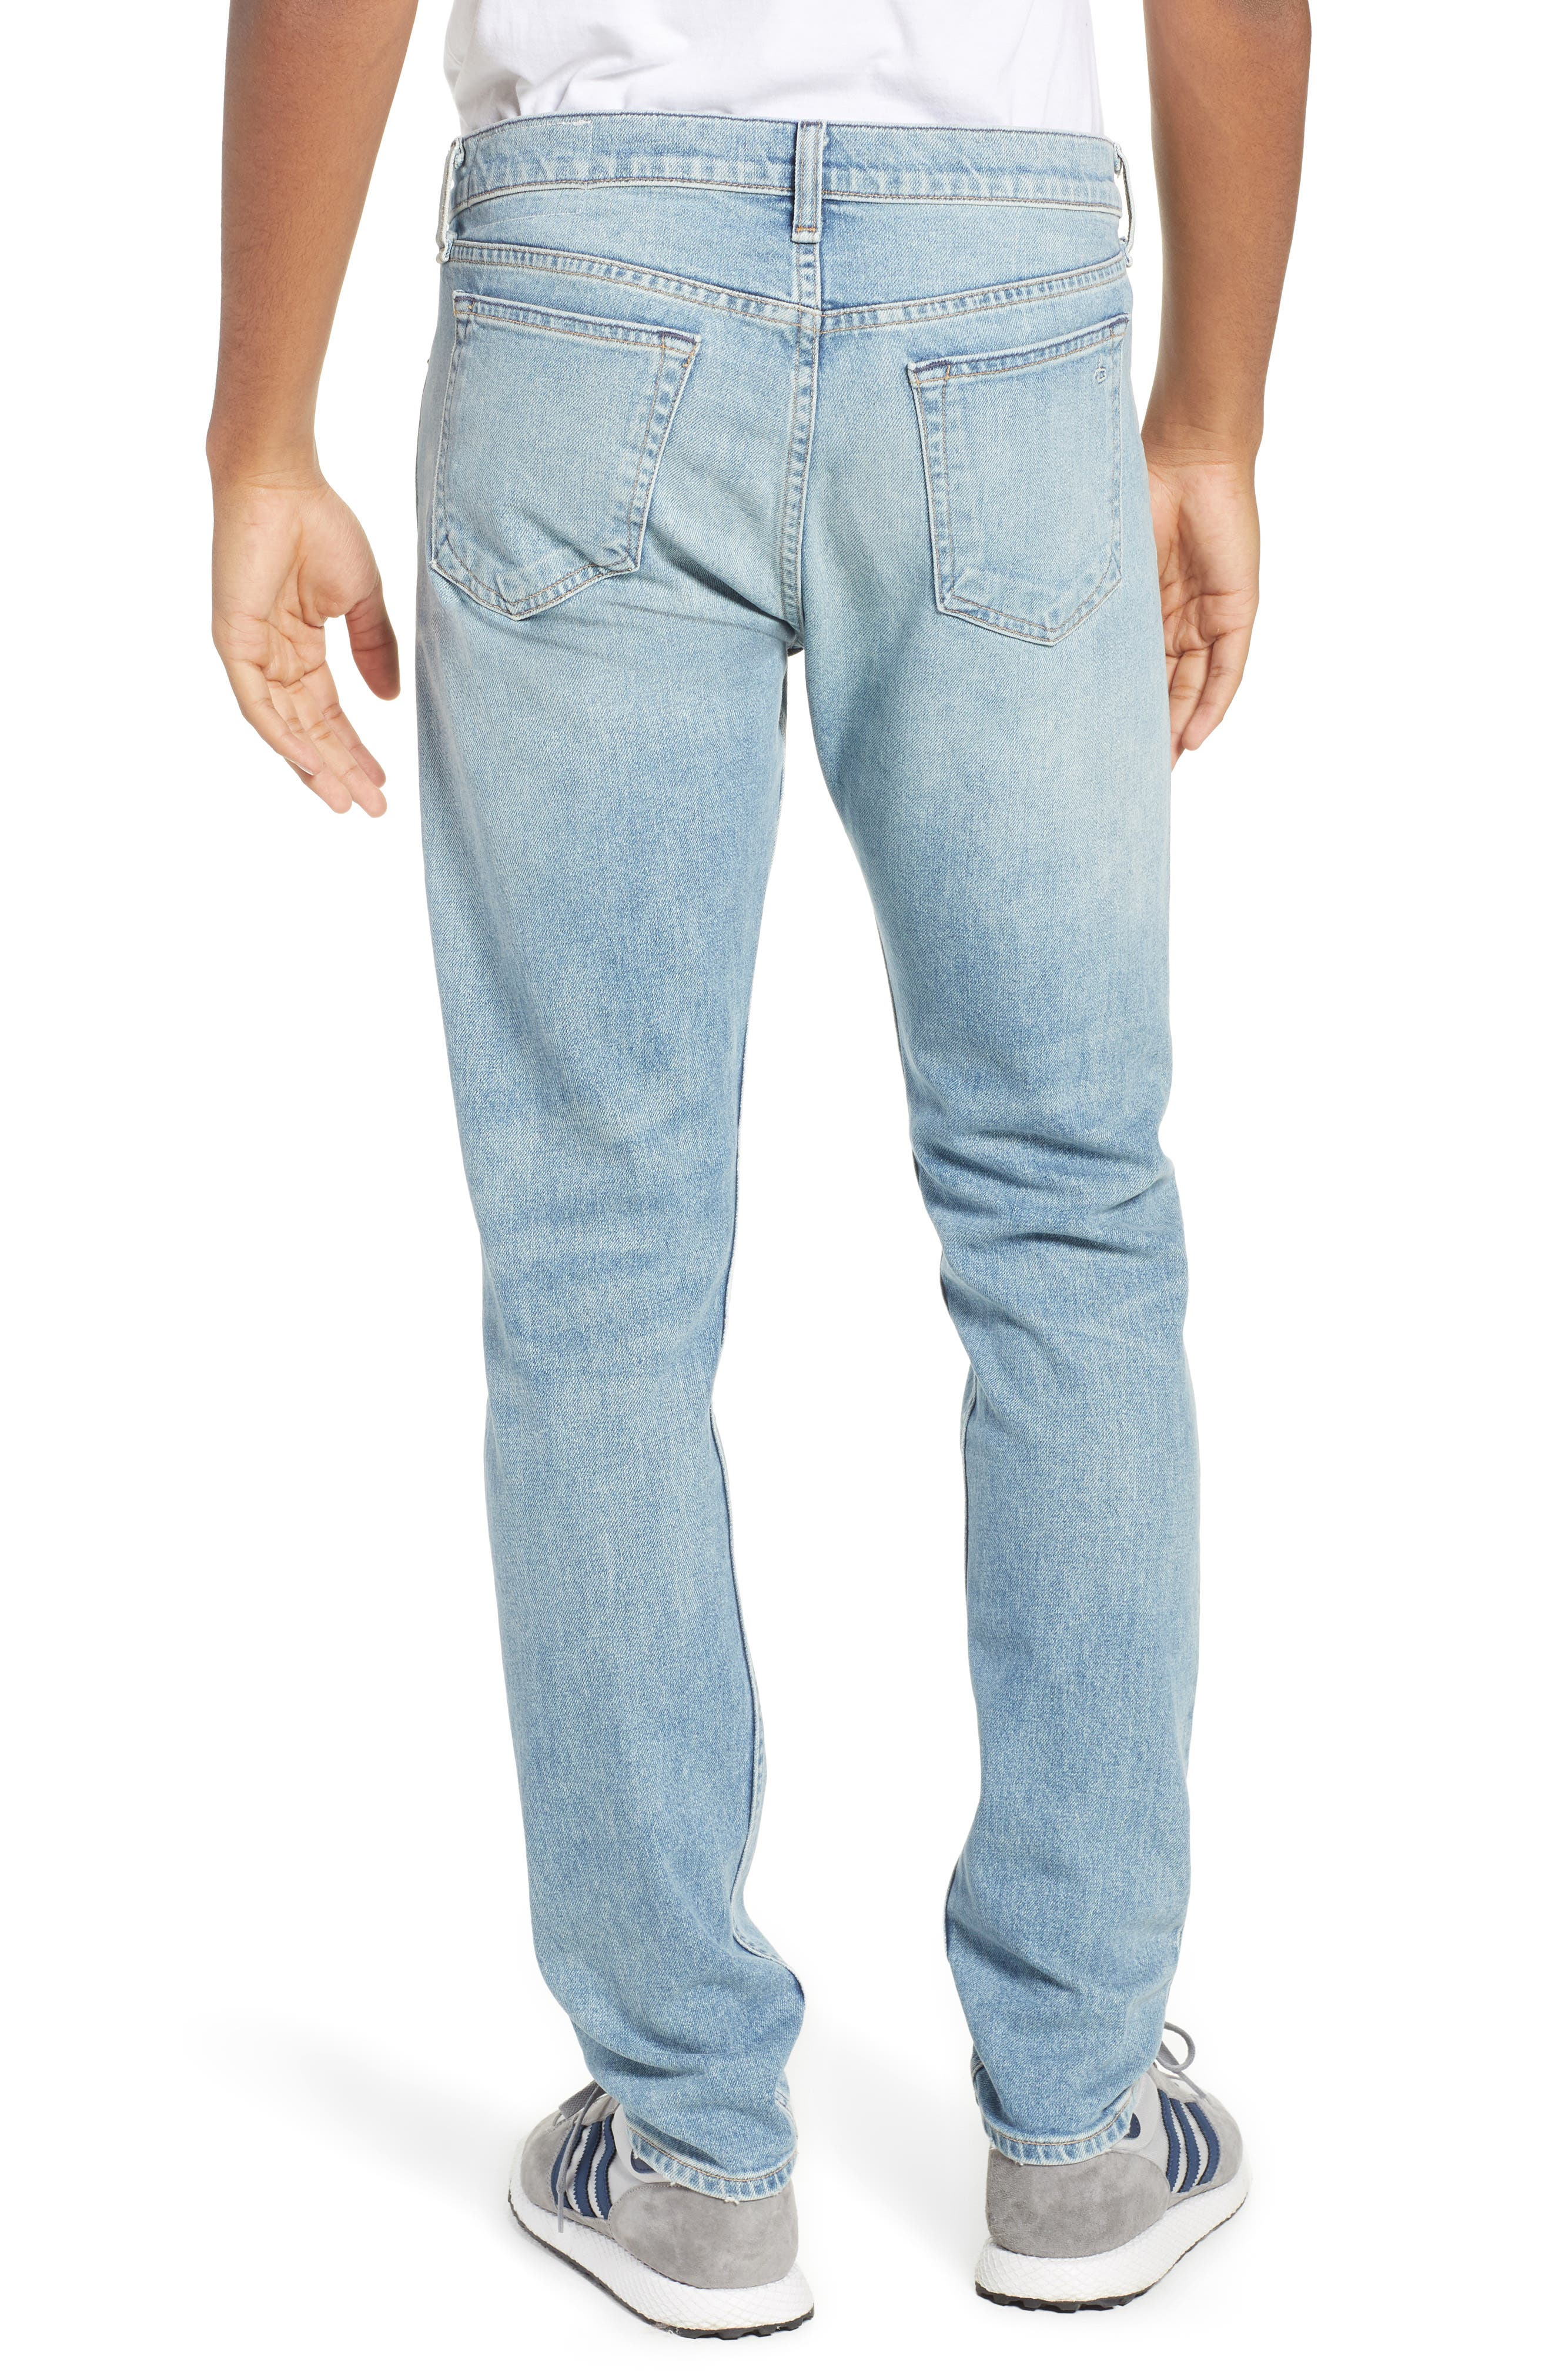 Fit 2 Slim Fit Jeans,                             Alternate thumbnail 2, color,                             JAMIE WITH HOLES